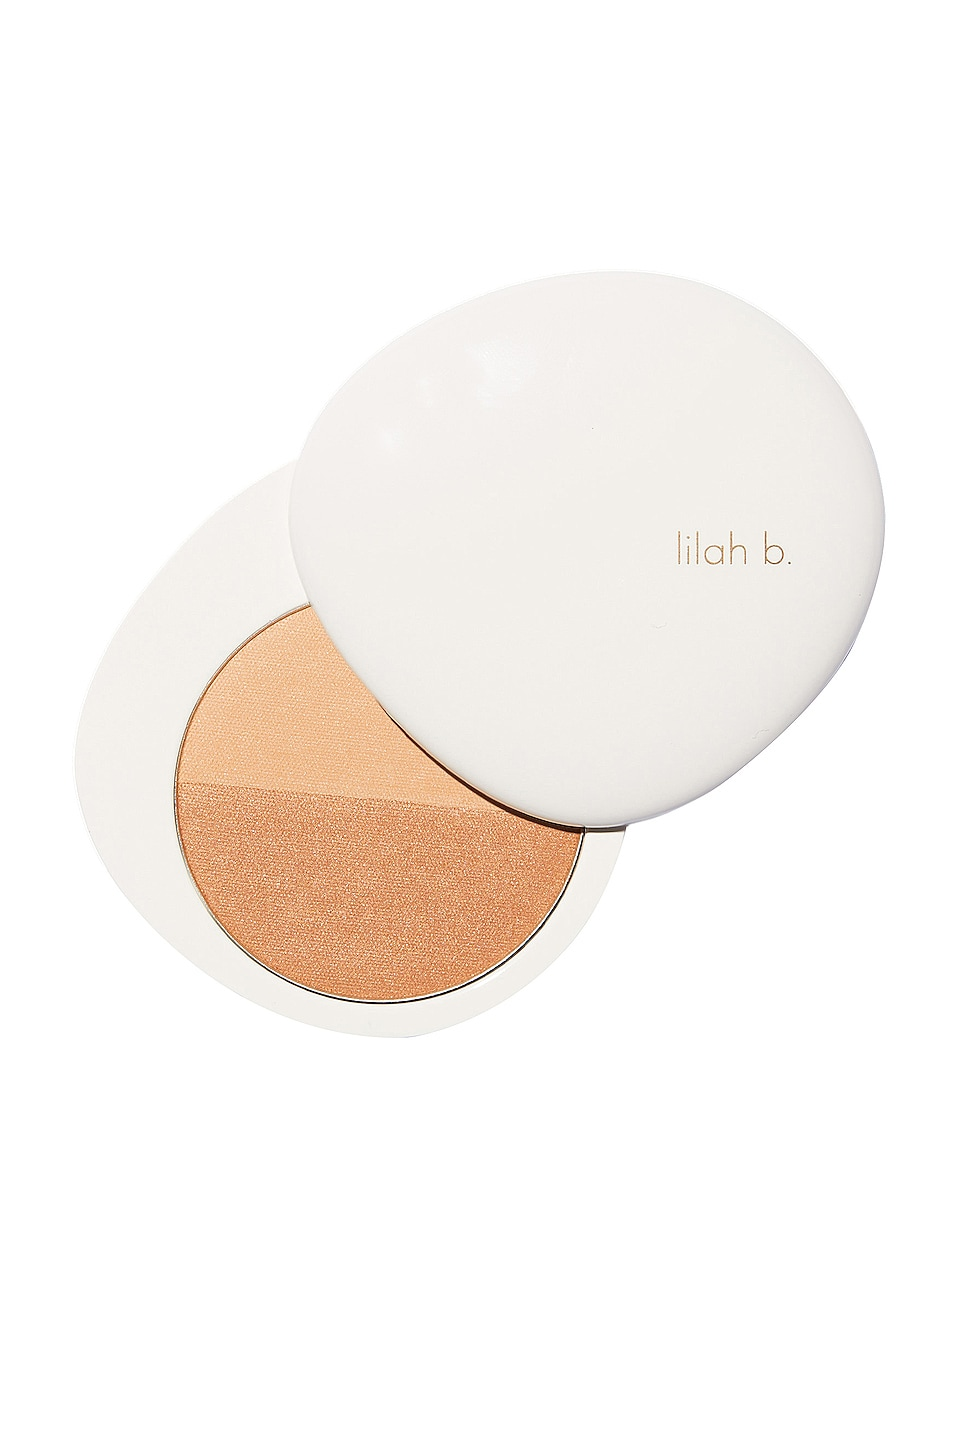 lilah b. Bronzed Beauty Bronzer in b. sun-kissed